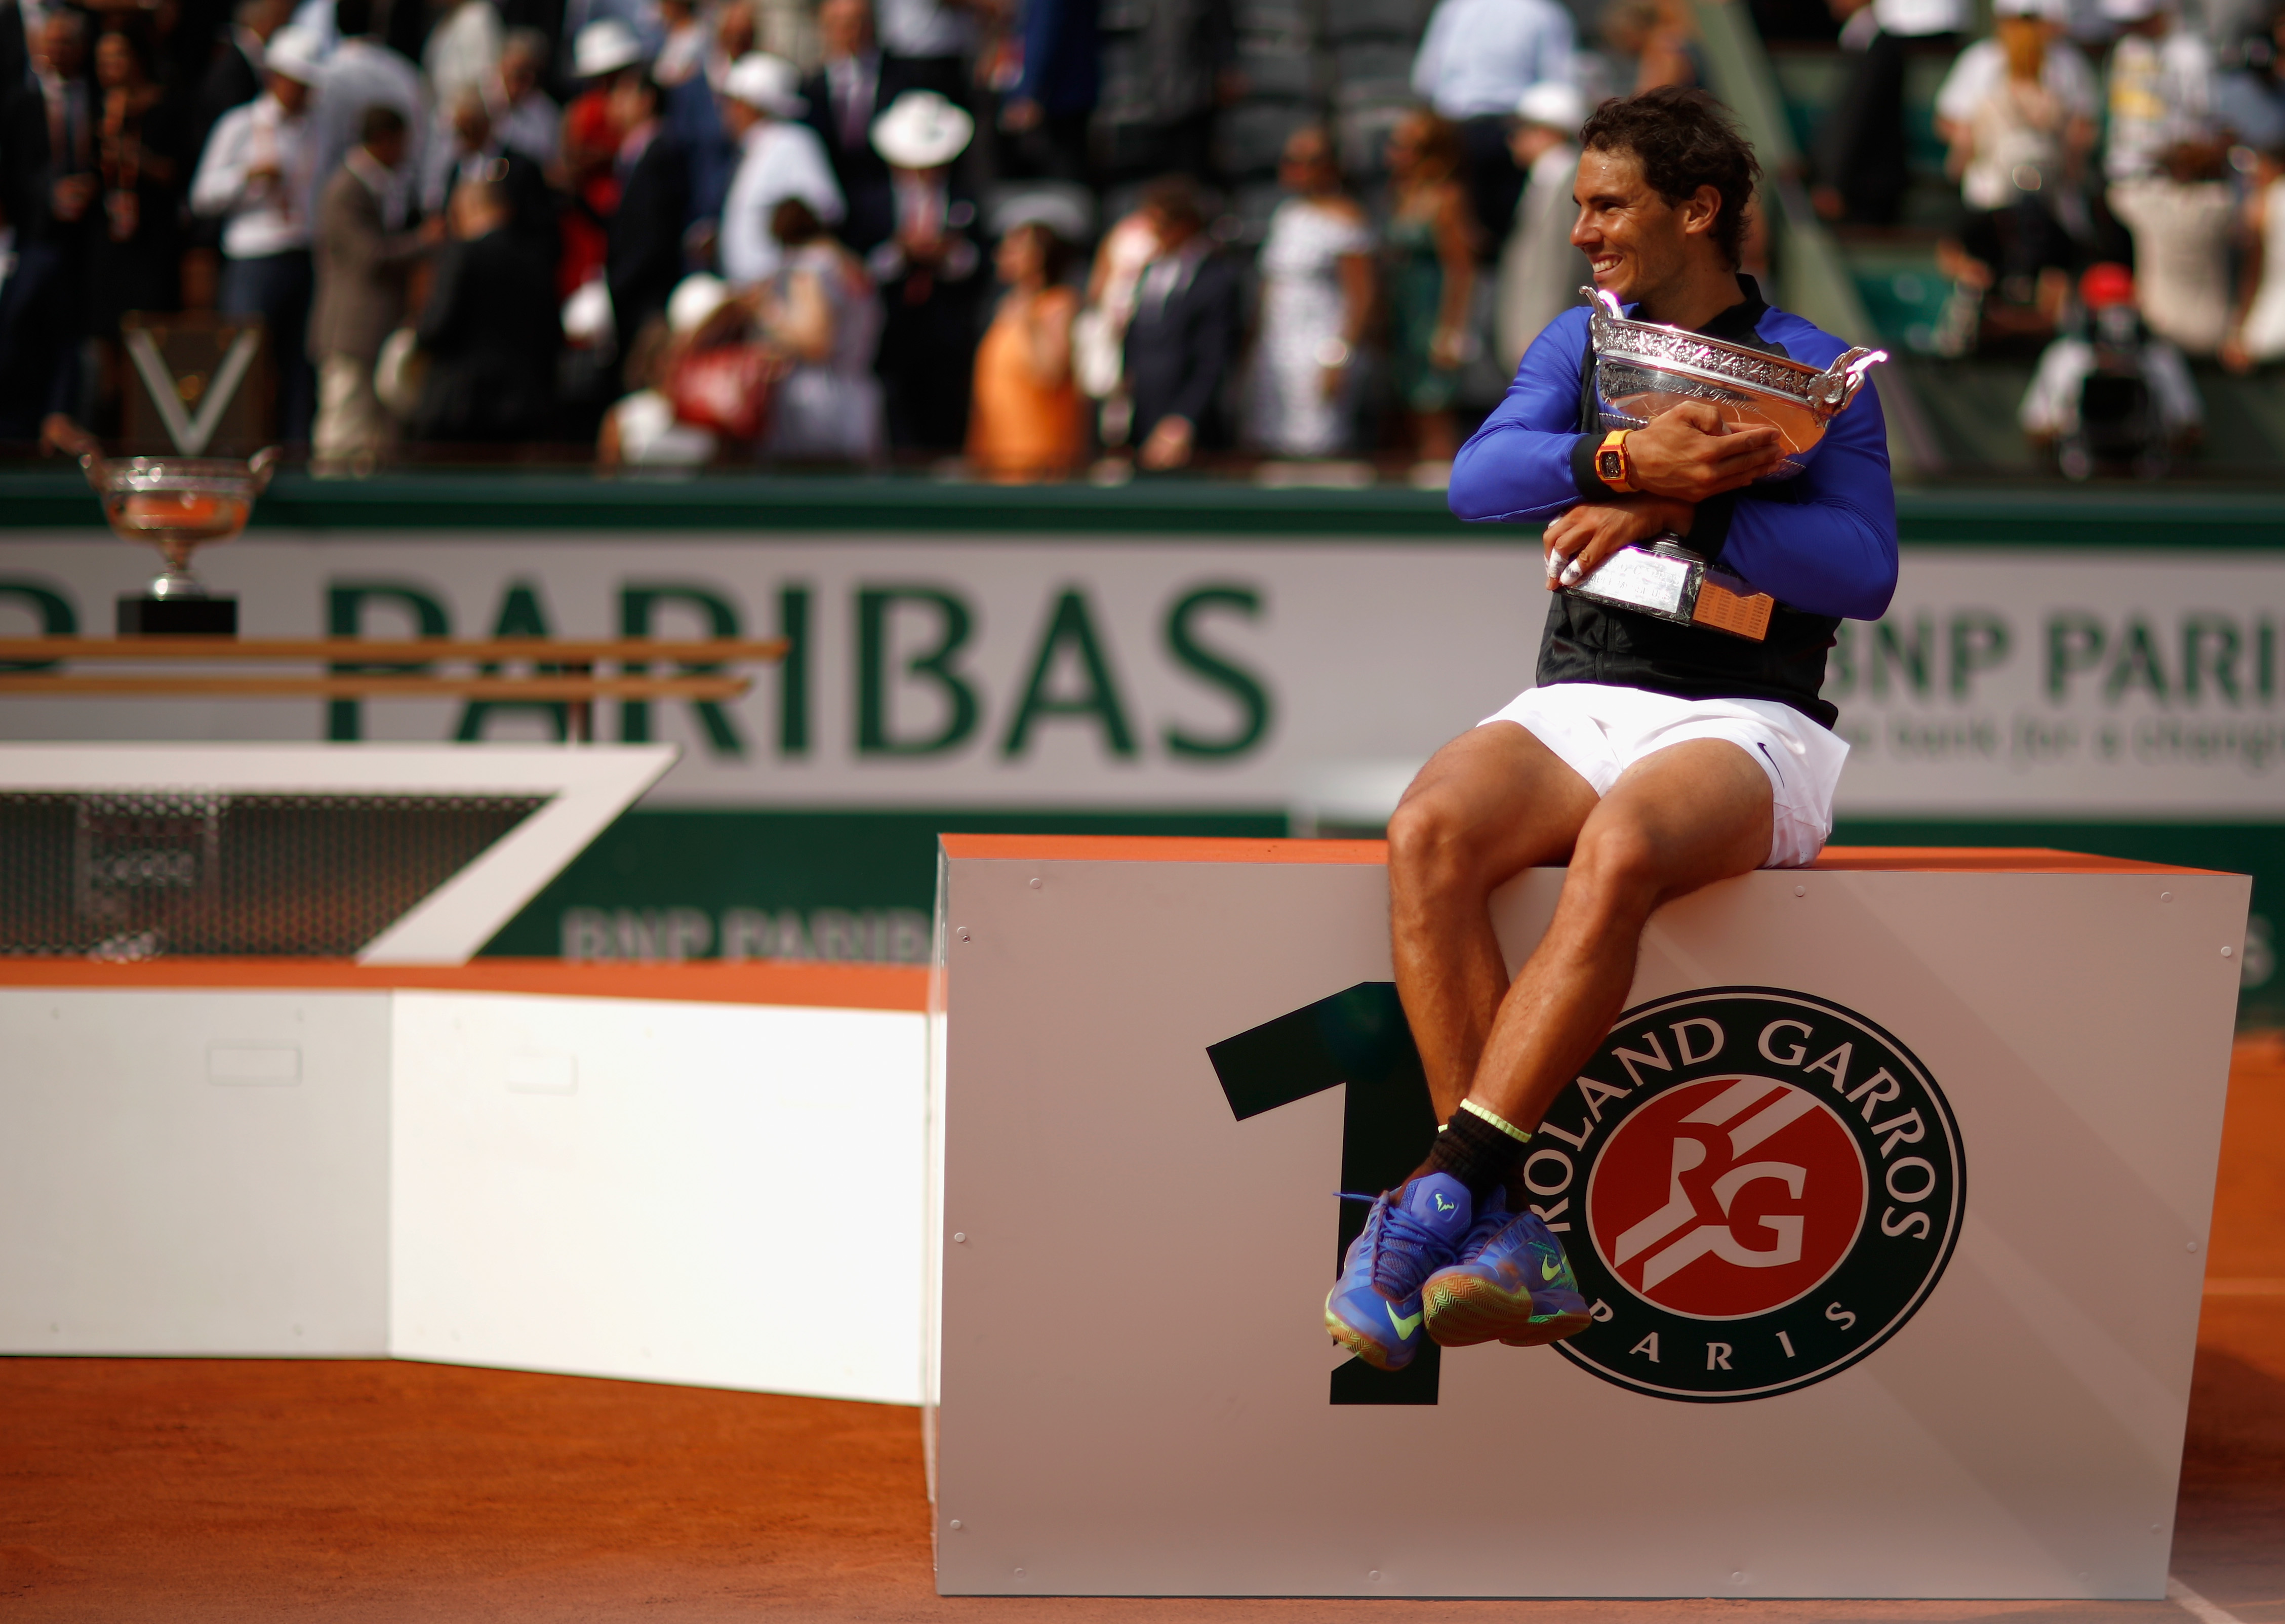 french open - photo #44